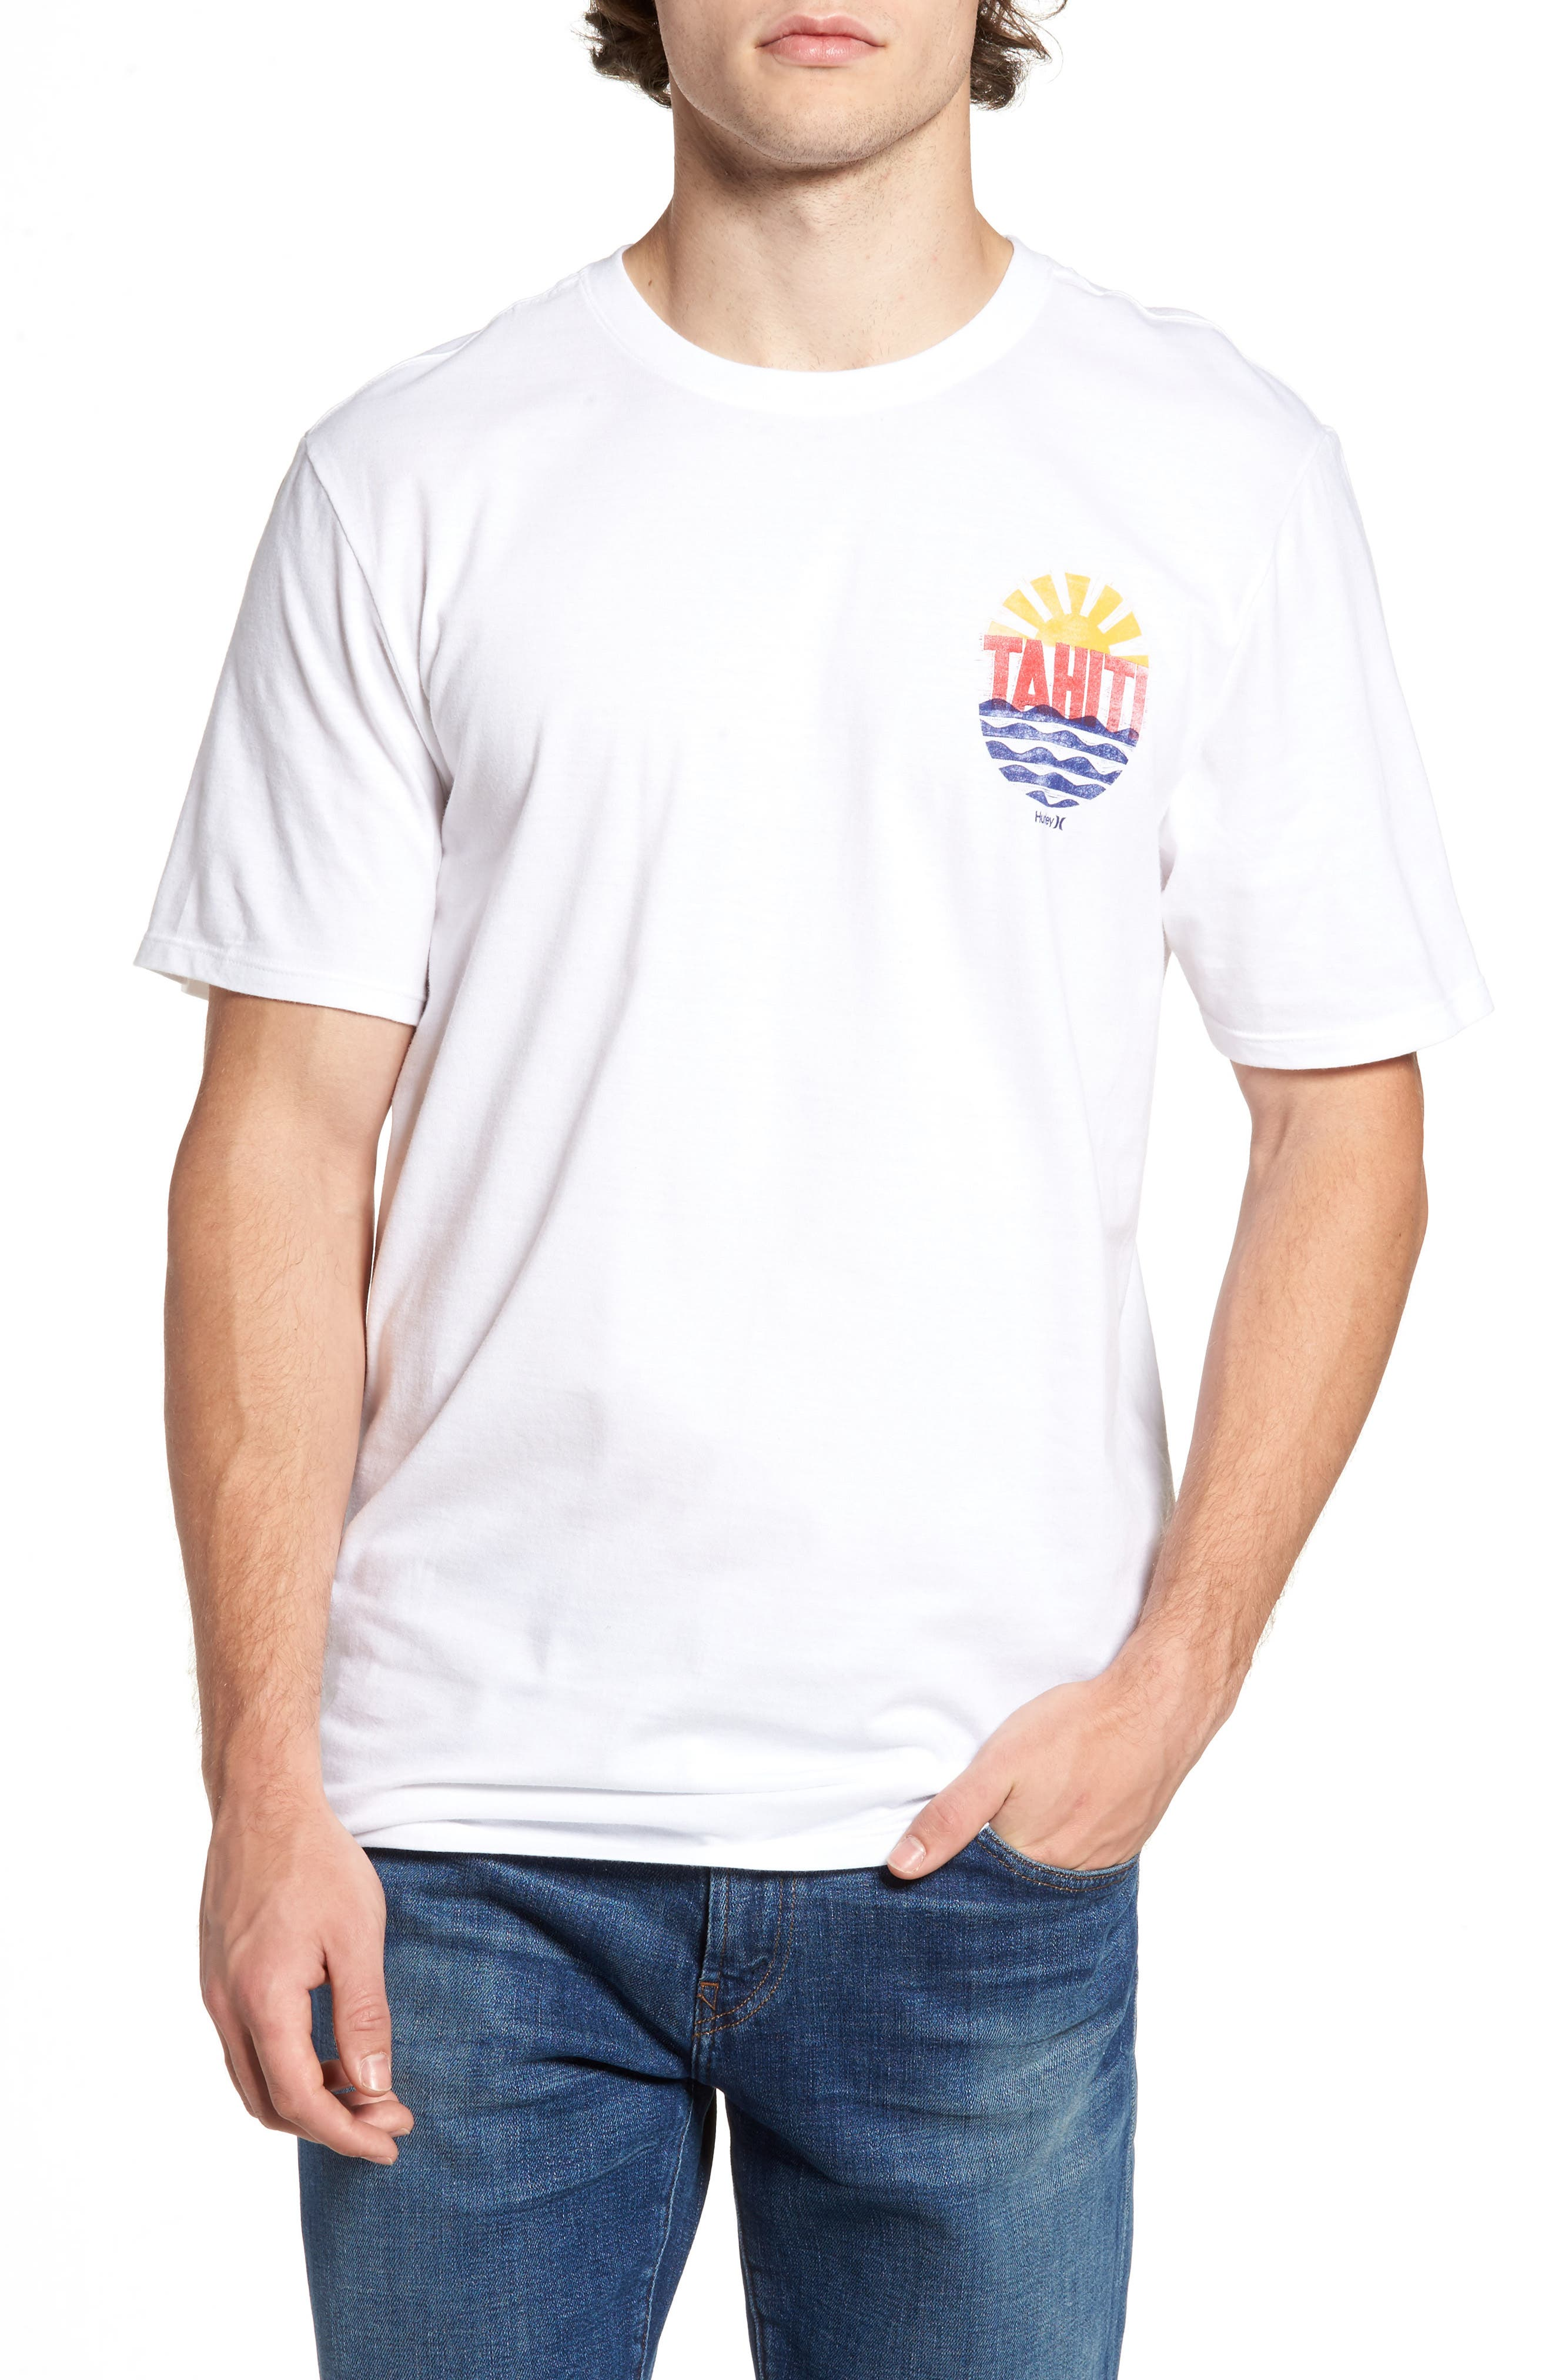 Hurley Tahiti Graphic T-Shirt